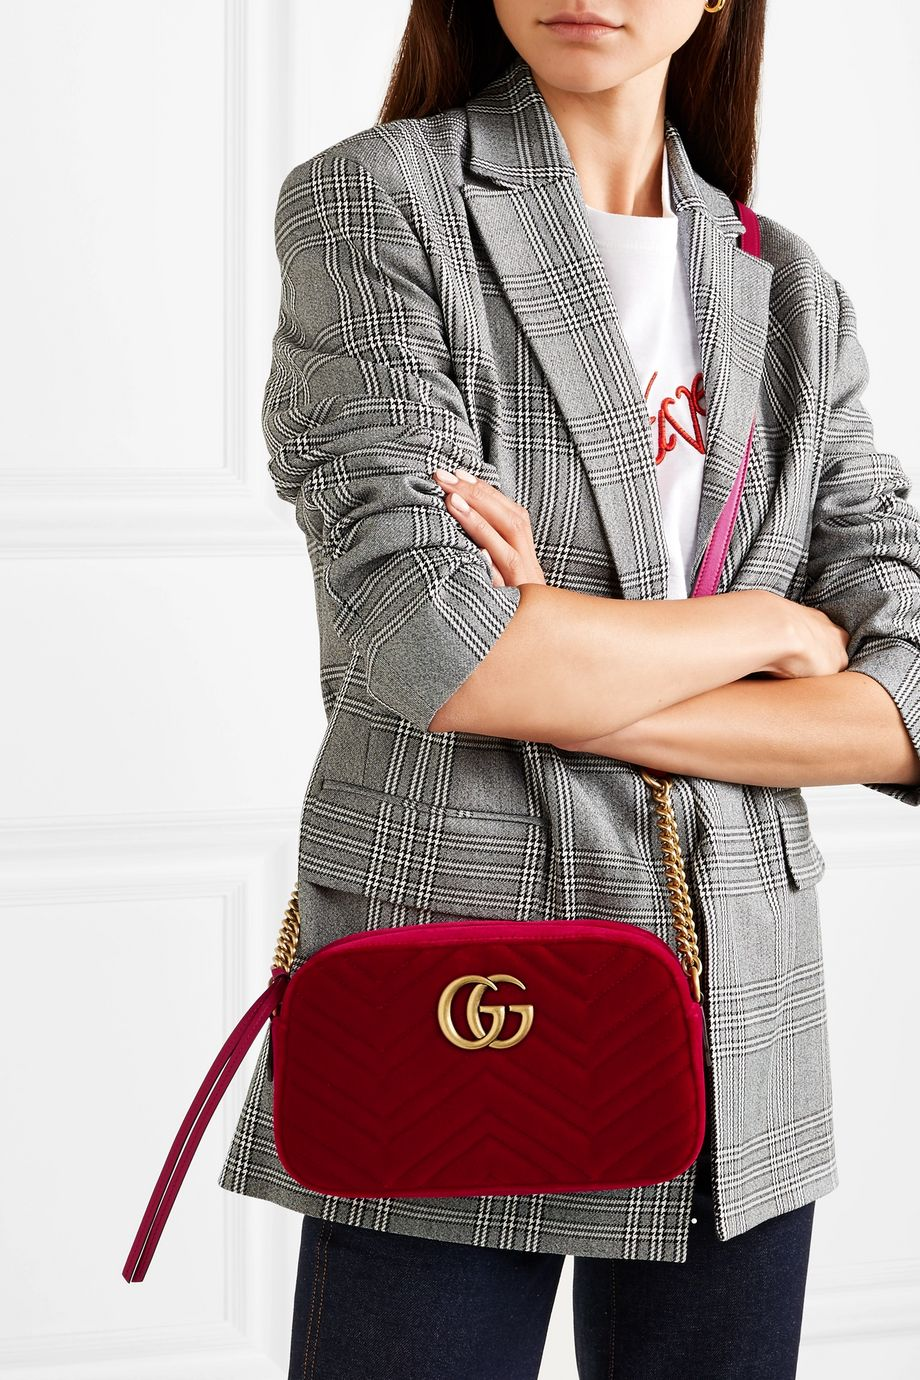 Gucci GG Marmont small quilted velvet shoulder bag